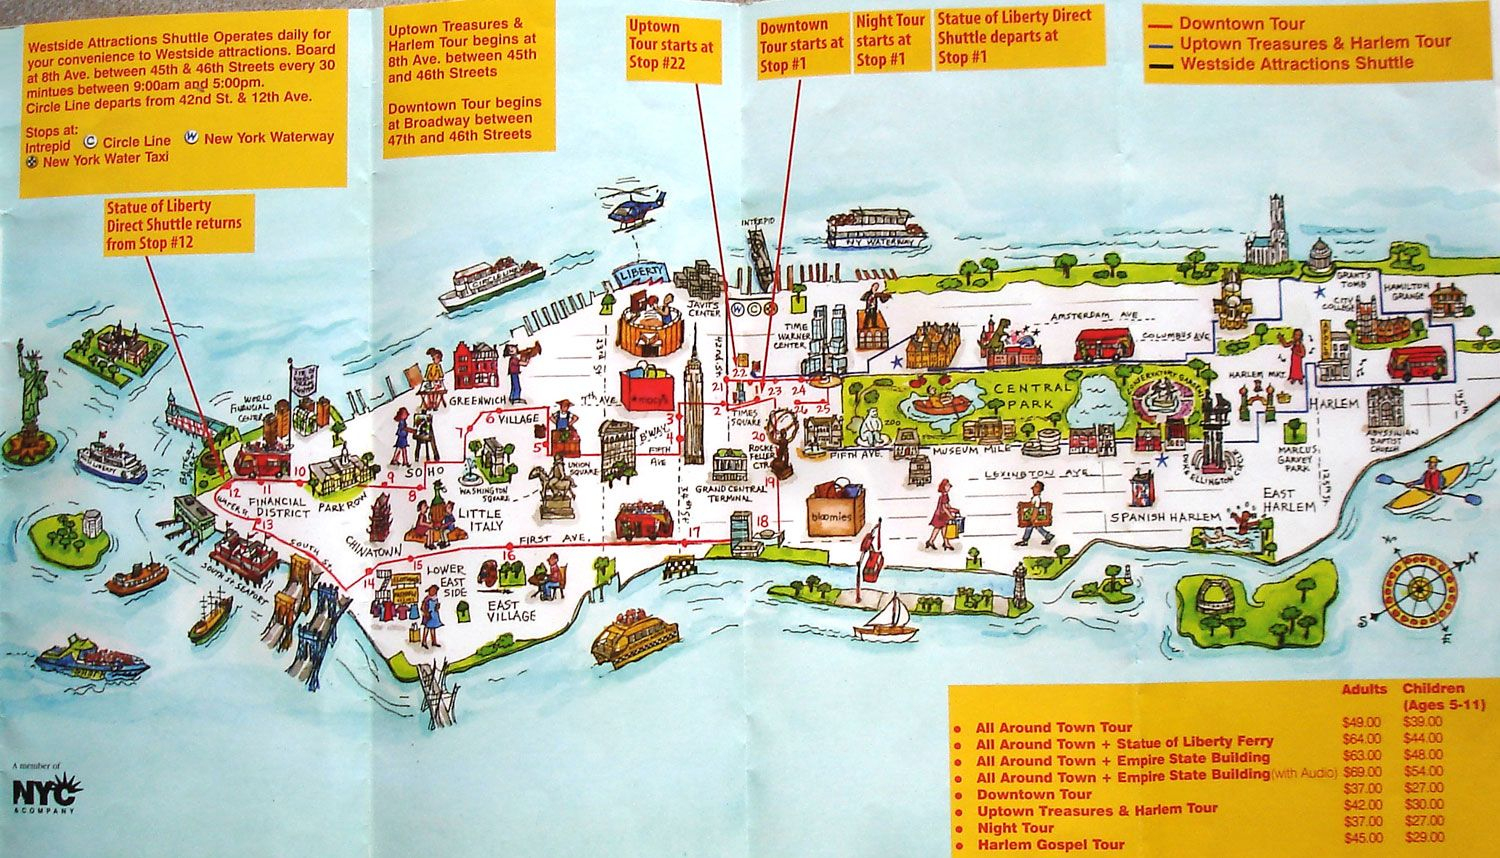 Map Of New York City Attractions Printable | Manhattan Citysites - Map Of Nyc Attractions Printable